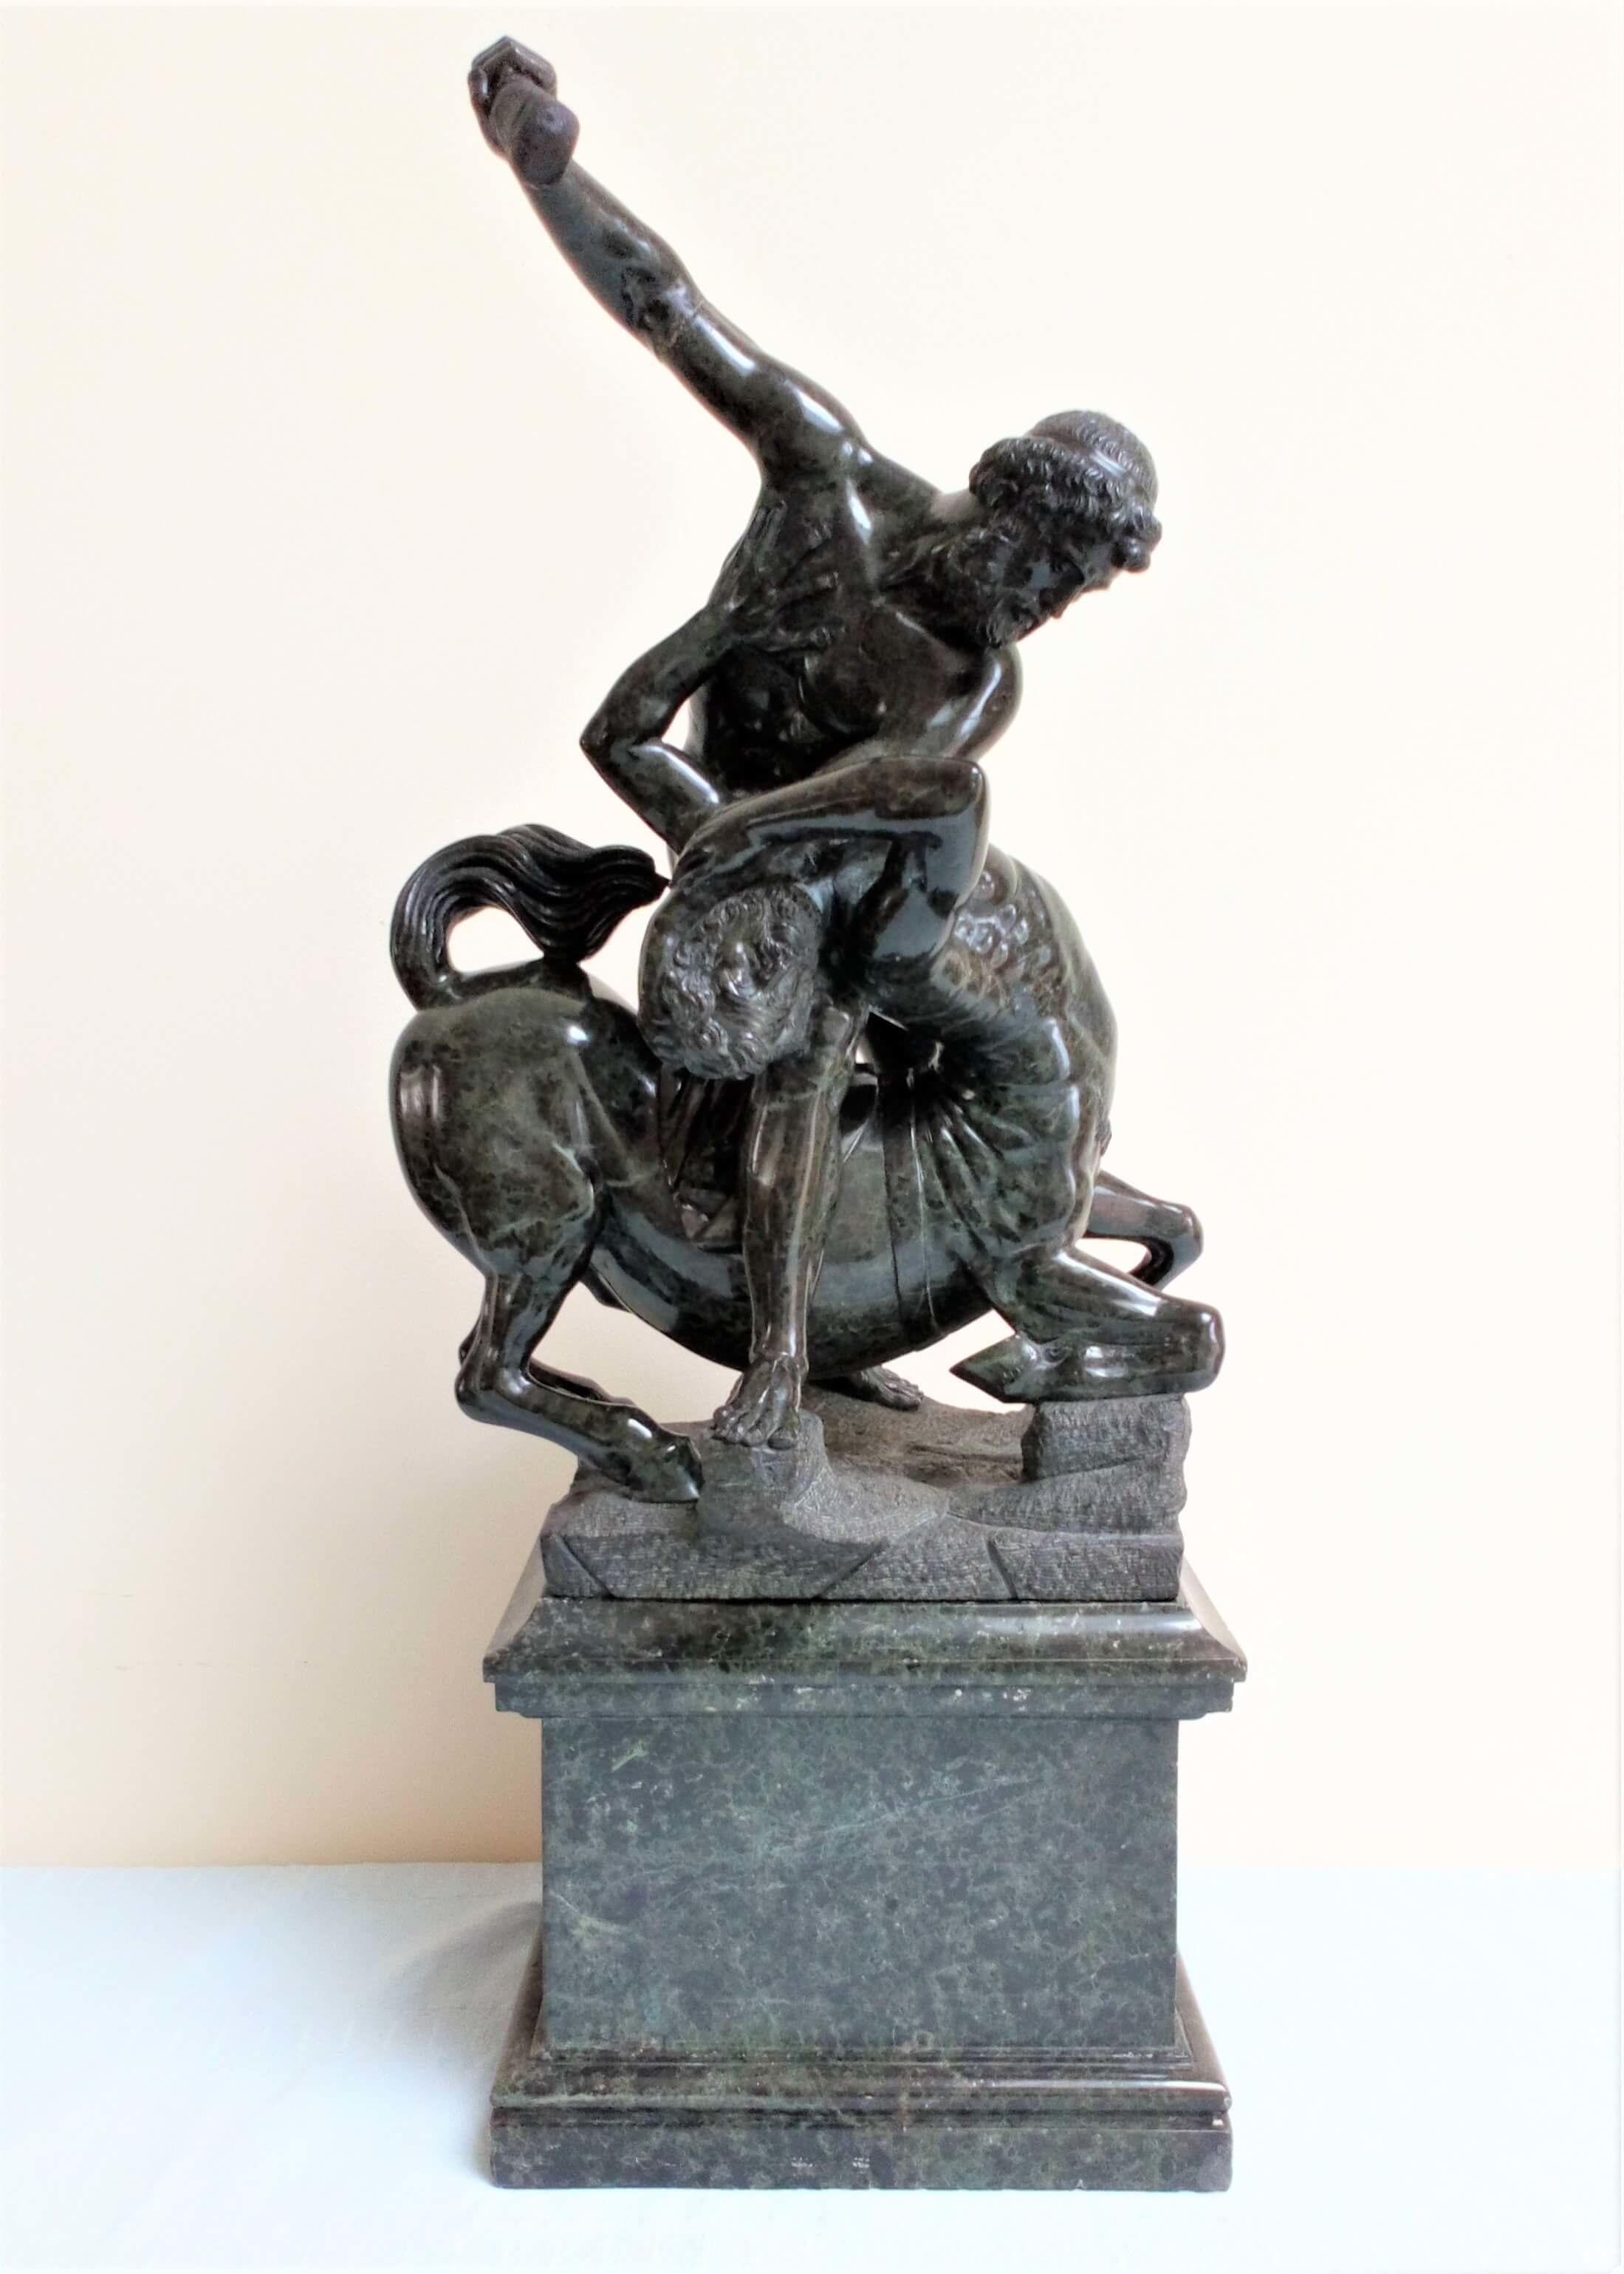 Antique 19th C Grand Tour serpentine sculpture depicting Hercules and Nessus the Centaur after the original by Giambologna 63cm